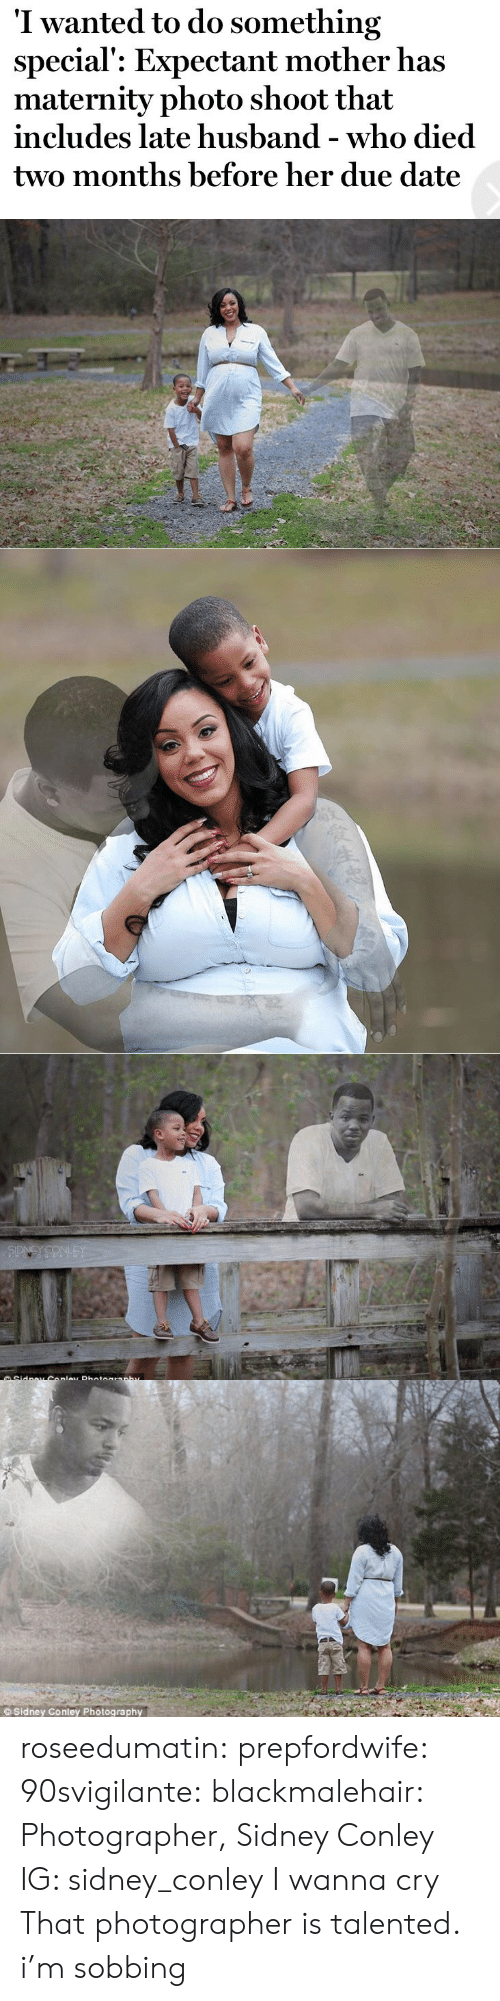 due date: I wanted to do something  special': Expectant mother has  maternity photo shoot that  includes late husband - who died  two months before her due date   SIDNEY CONLEY  Sidnav Conlav Photoaranhv   Sidney Conley Photography roseedumatin:  prepfordwife:   90svigilante:   blackmalehair:  Photographer, Sidney Conley  IG: sidney_conley  I wanna cry   That photographer is talented.   i'm sobbing